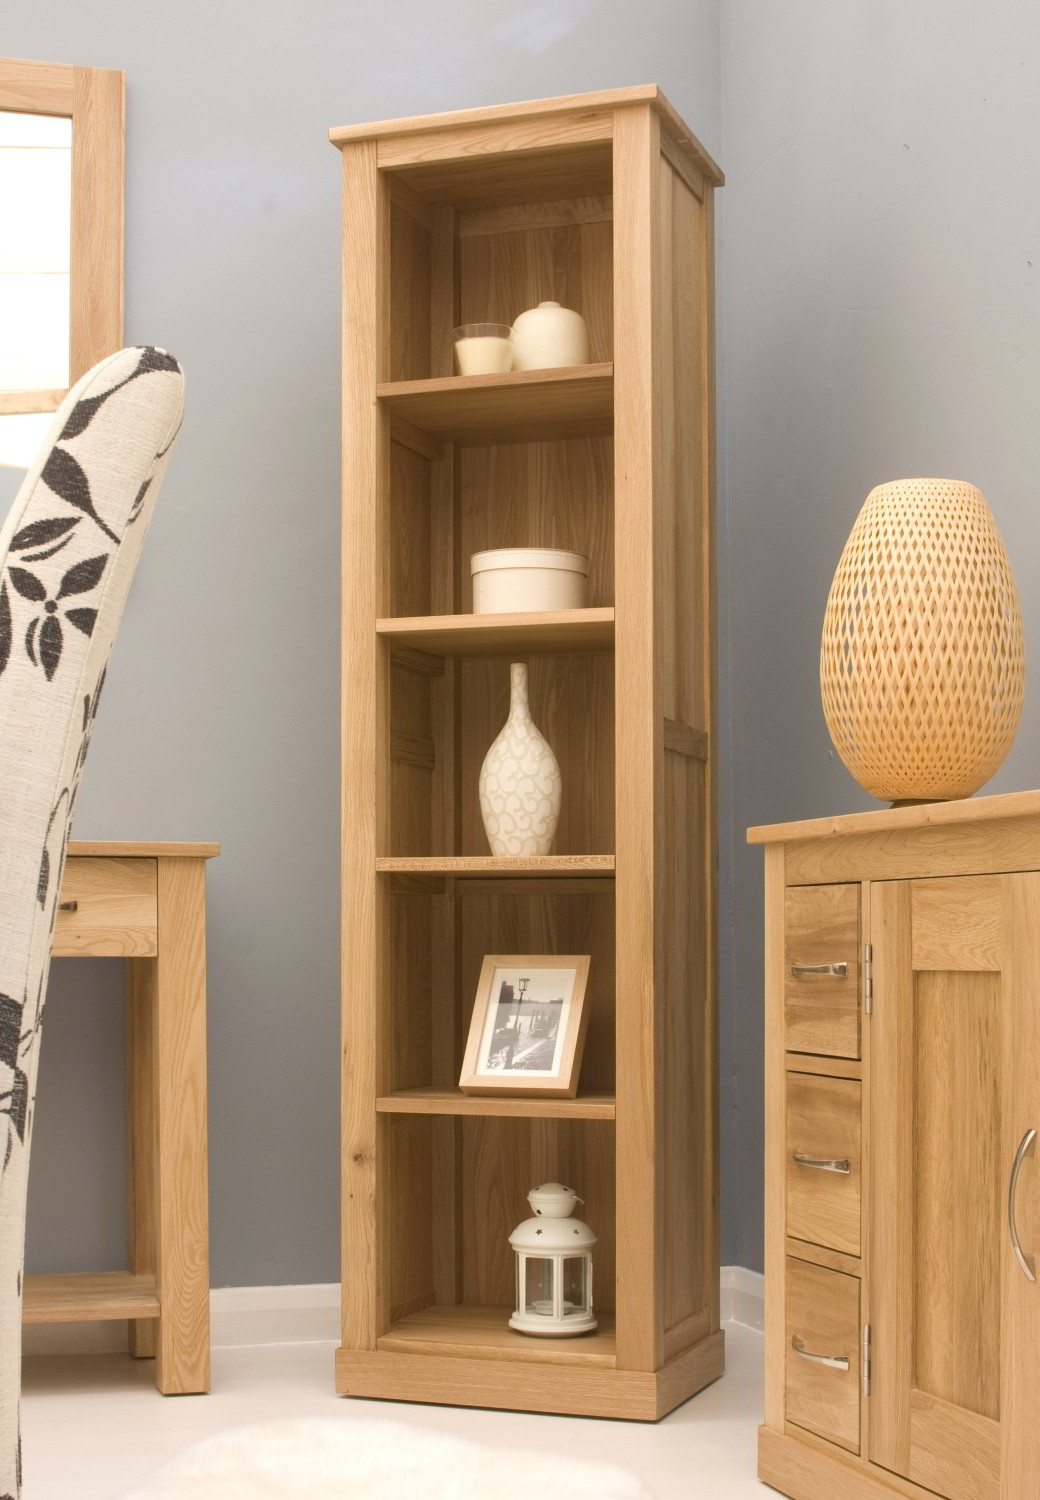 Details About Conran Solid Oak Modern Furniture Narrow Living Room Office Bookcase